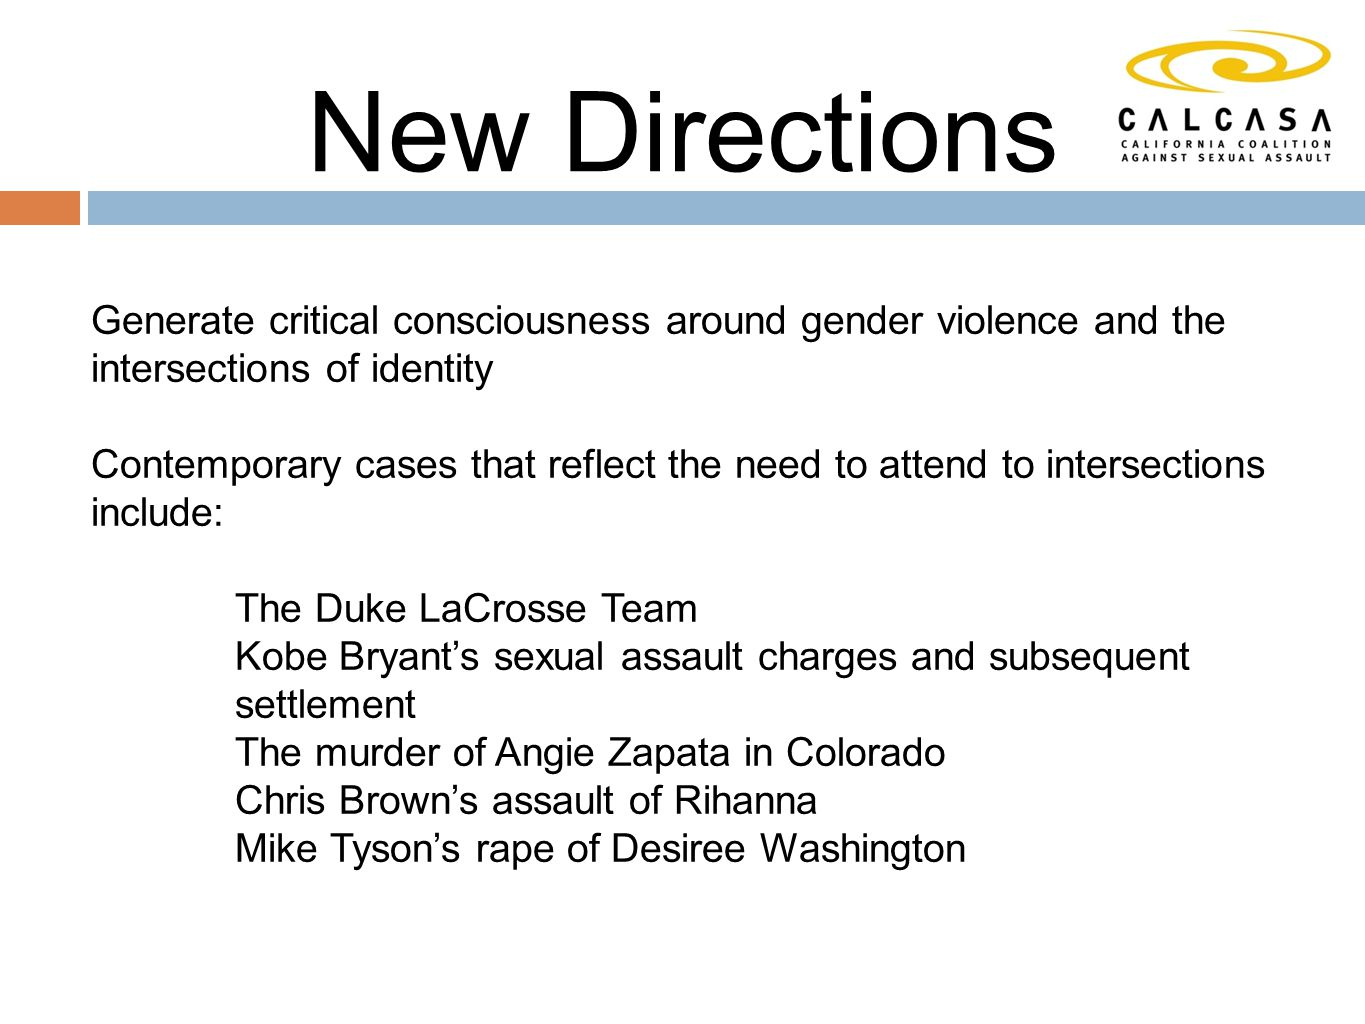 New Directions Generate critical consciousness around gender violence and the intersections of identity Contemporary cases that reflect the need to attend to intersections include: The Duke LaCrosse Team Kobe Bryant's sexual assault charges and subsequent settlement The murder of Angie Zapata in Colorado Chris Brown's assault of Rihanna Mike Tyson's rape of Desiree Washington